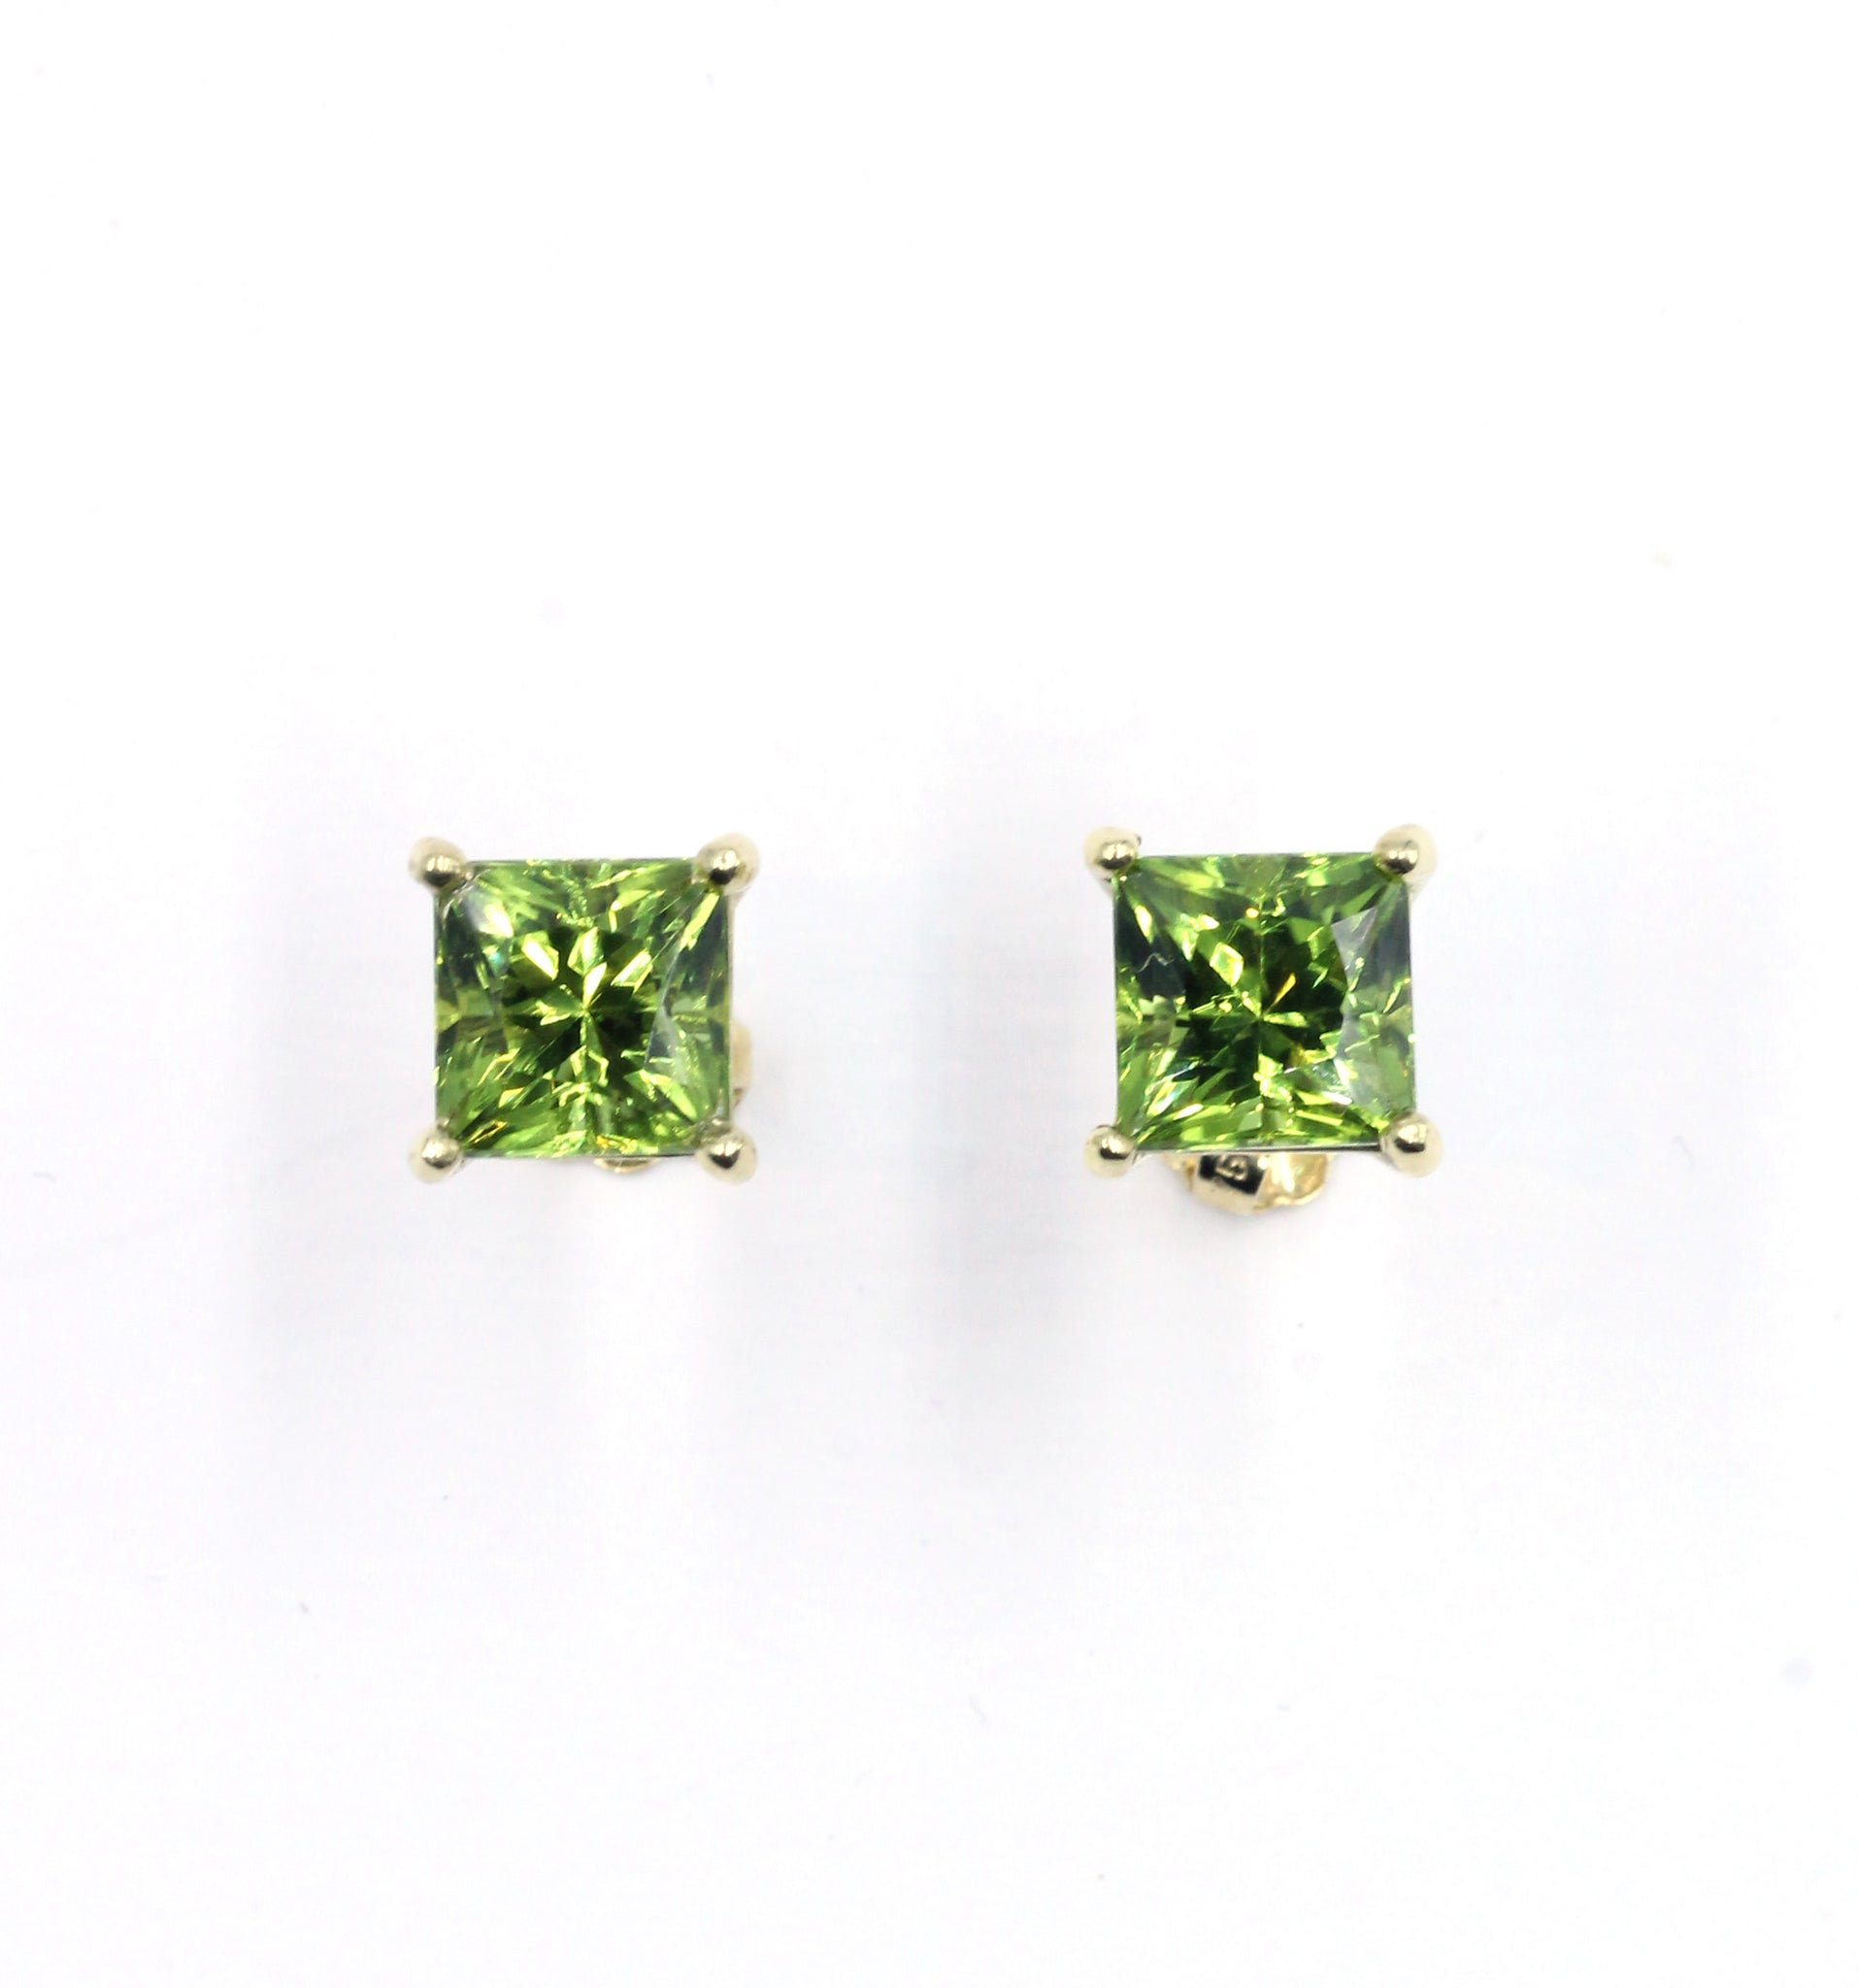 Deleuse Designer Peridot Earrings, Sold